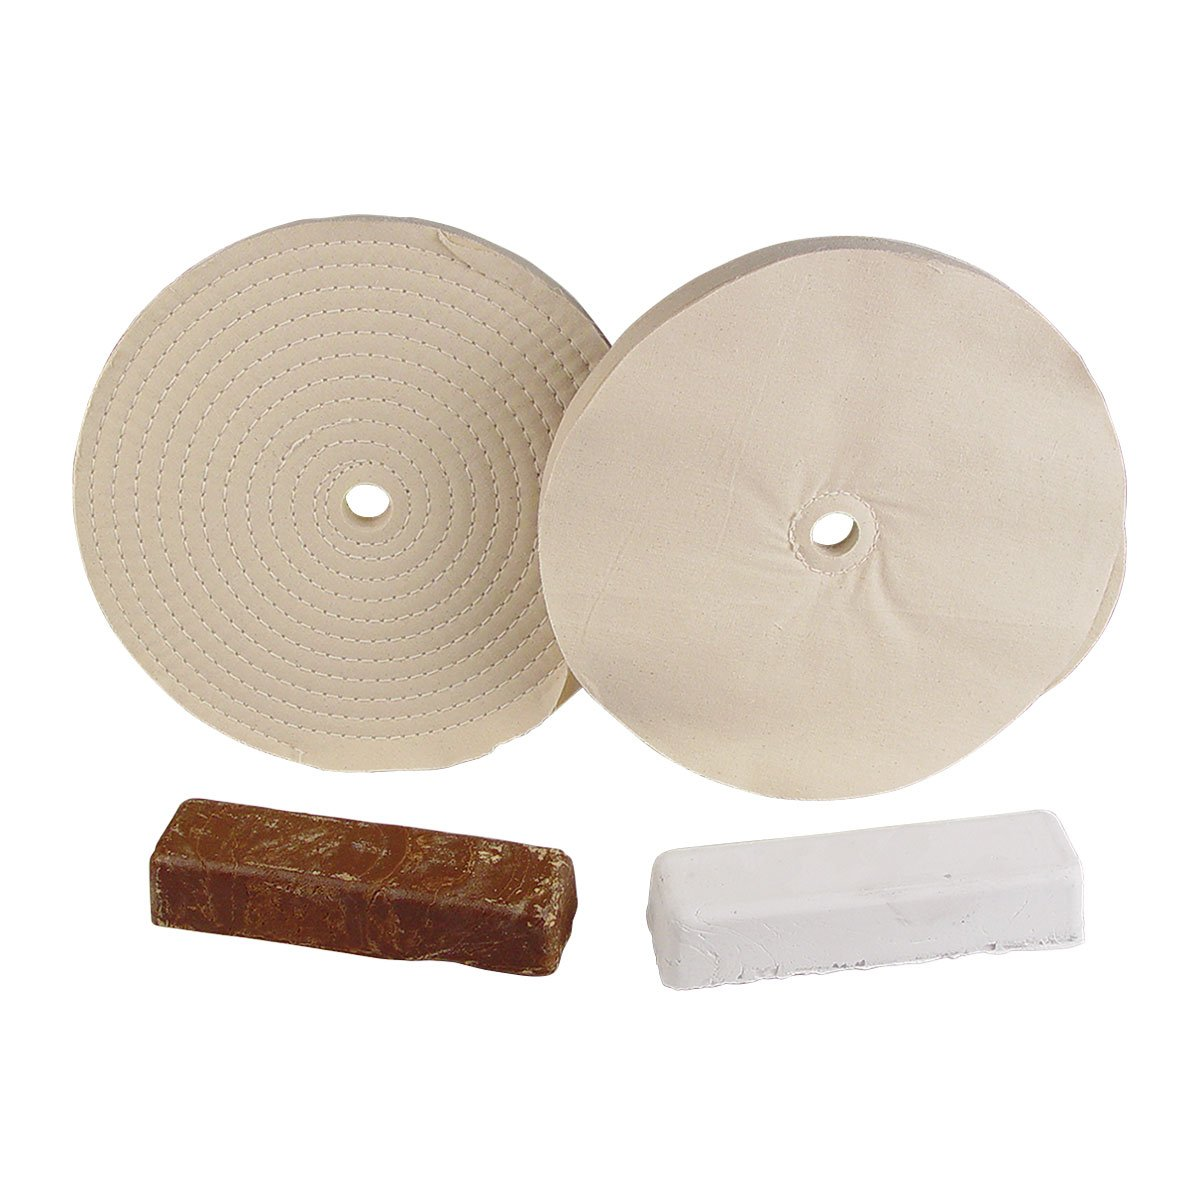 10'' Aluminum and Brass Buffing Set 8455-142, Fits 3/4''-7/8'' Arbor Hole, Made in USA